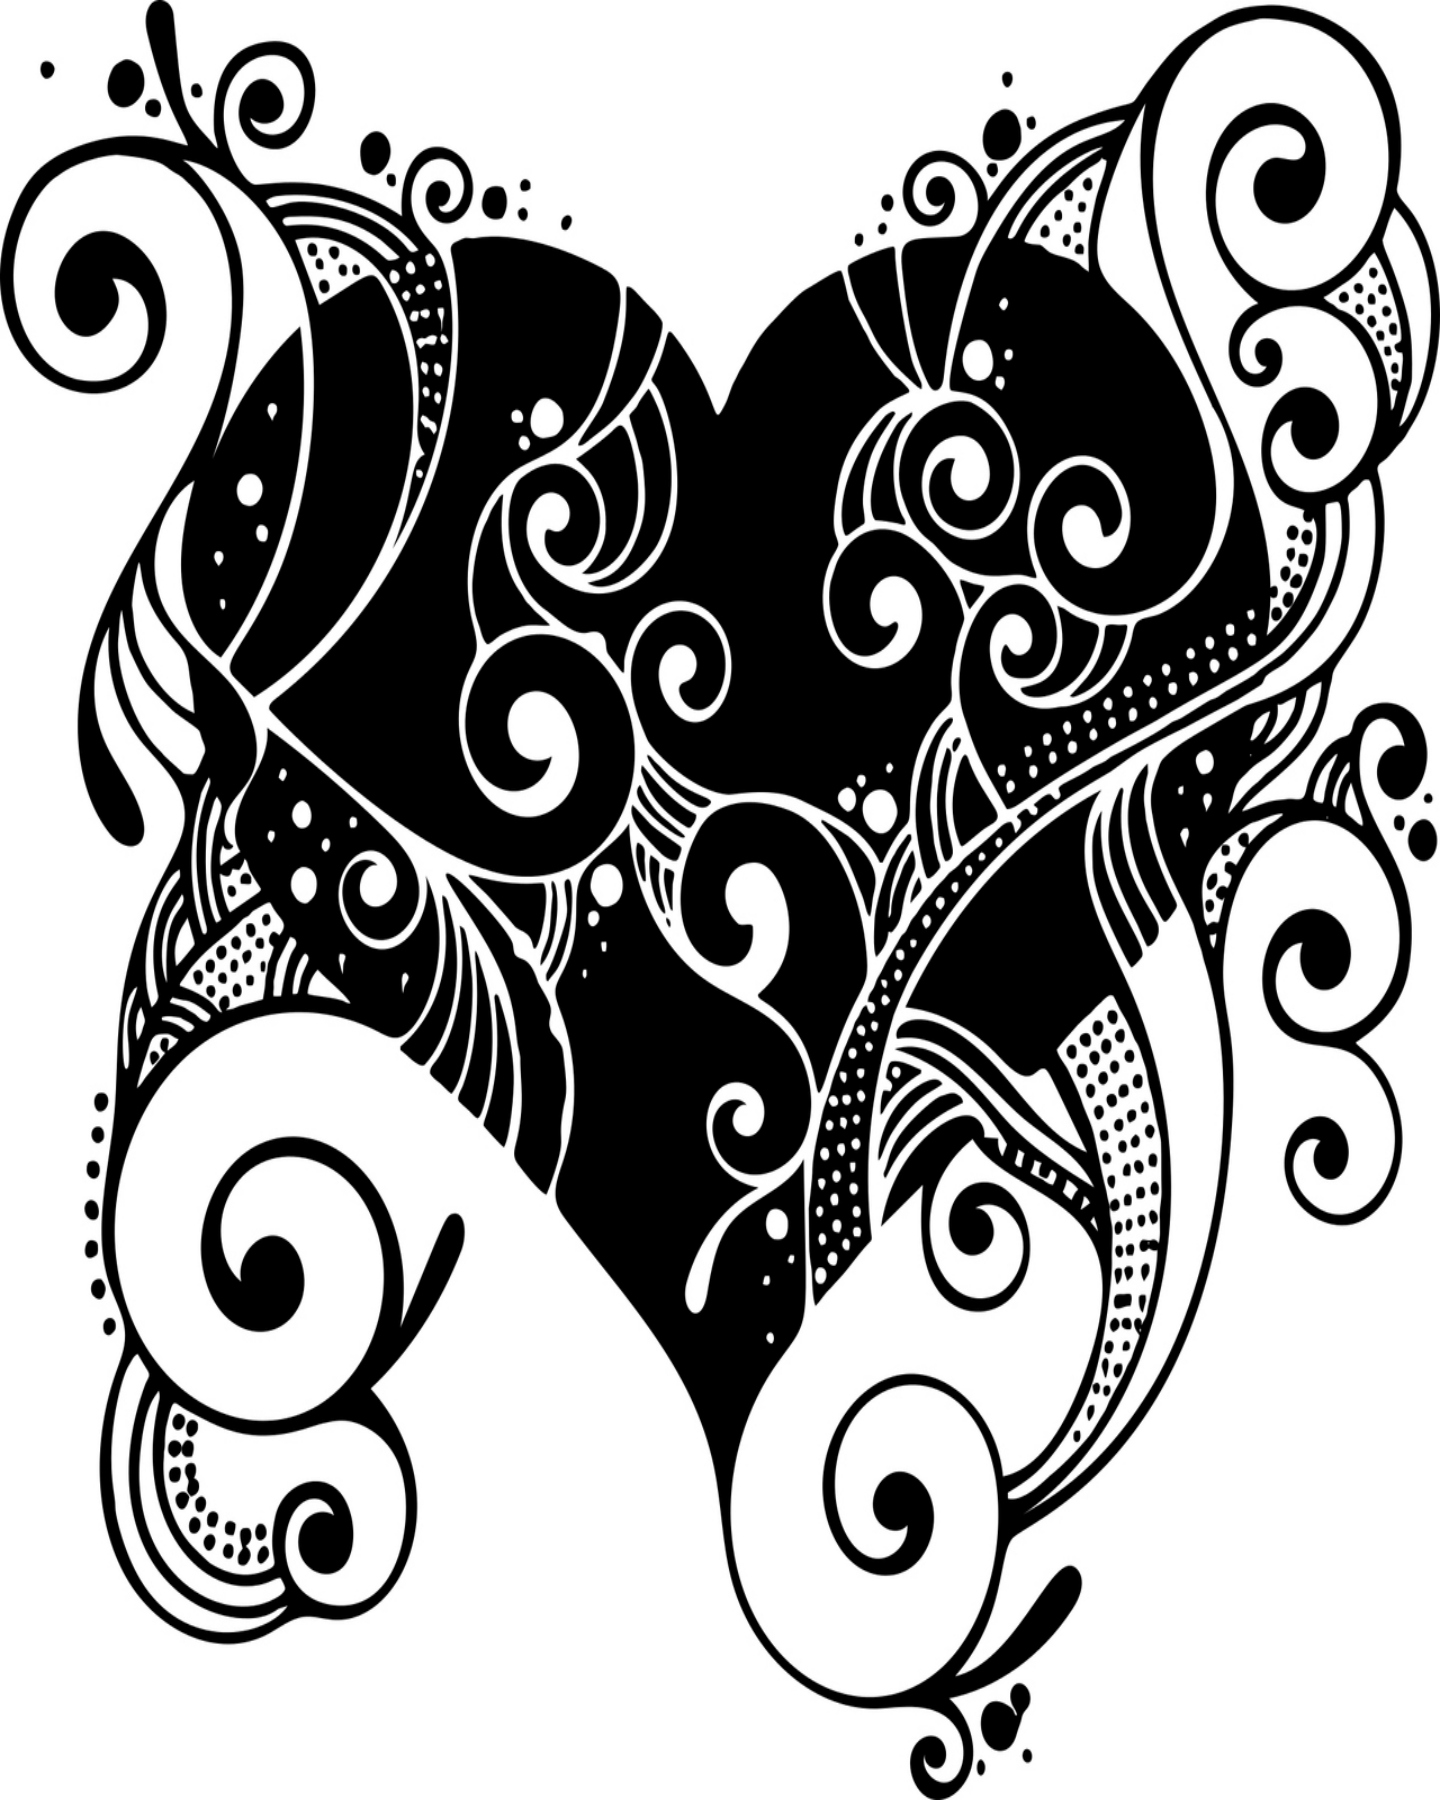 Fancy Heart Drawing at GetDrawings.com | Free for personal use Fancy ...